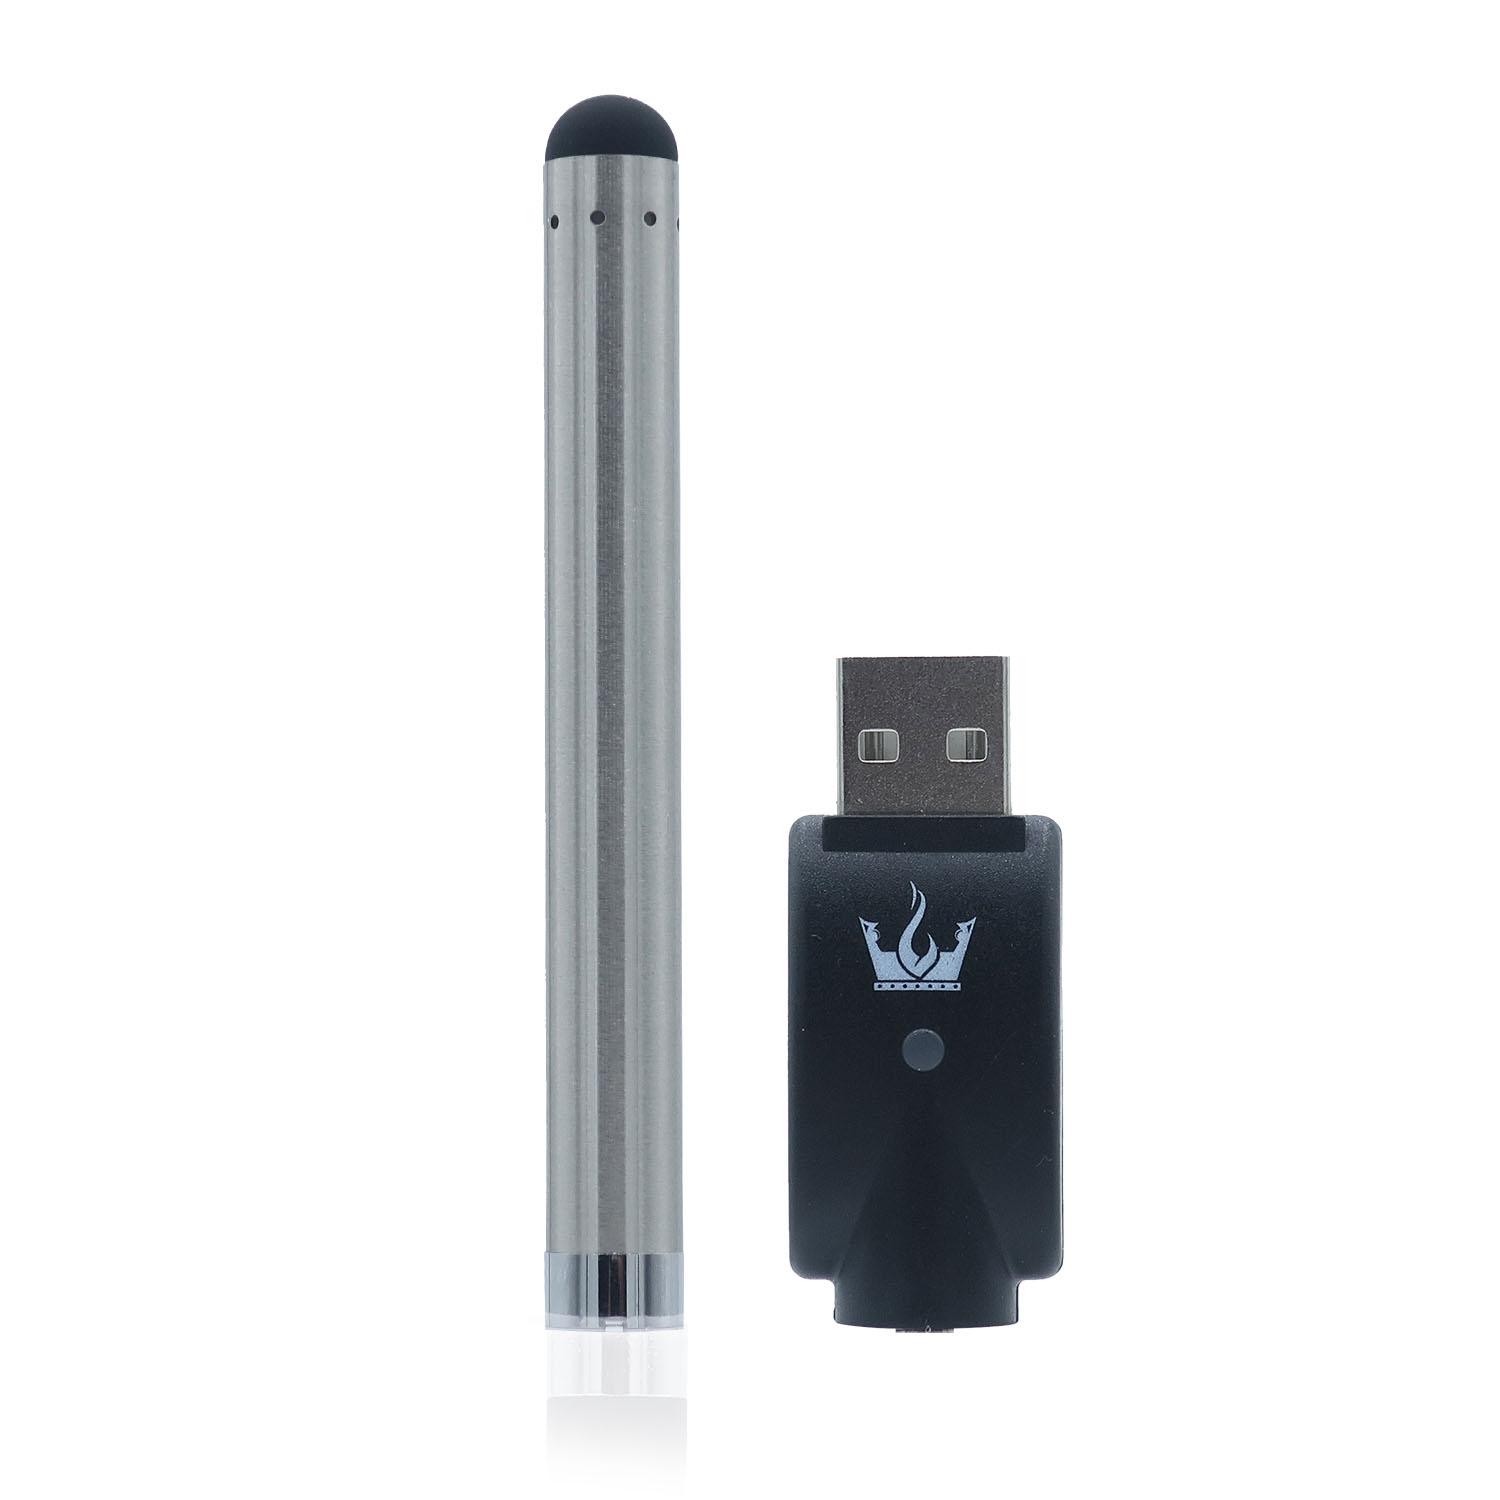 280 mAh Slim Automatic Buttonless Vape Battery with Stylus Tip